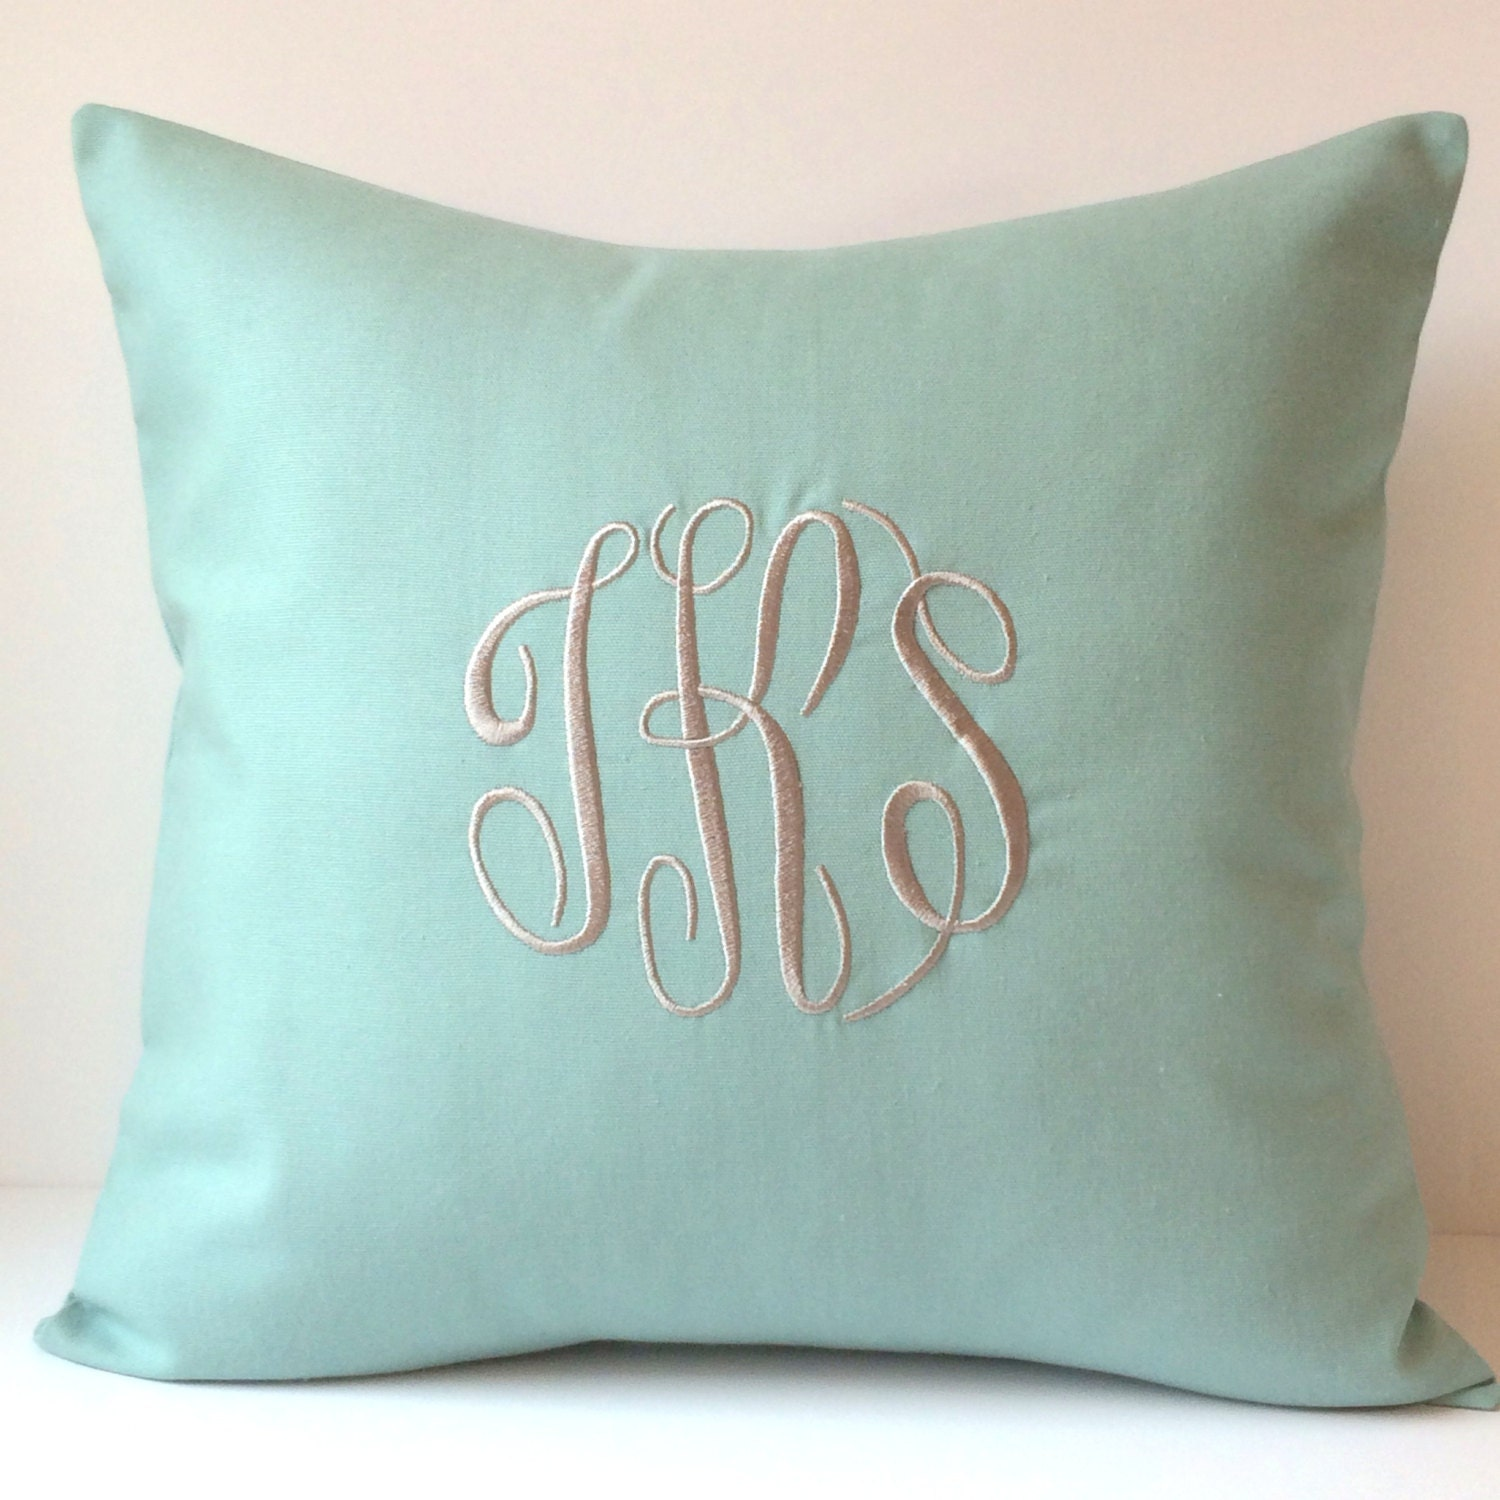 Monogrammed Pillows. 18 x 18 Throw Pillow Cover. Personalized